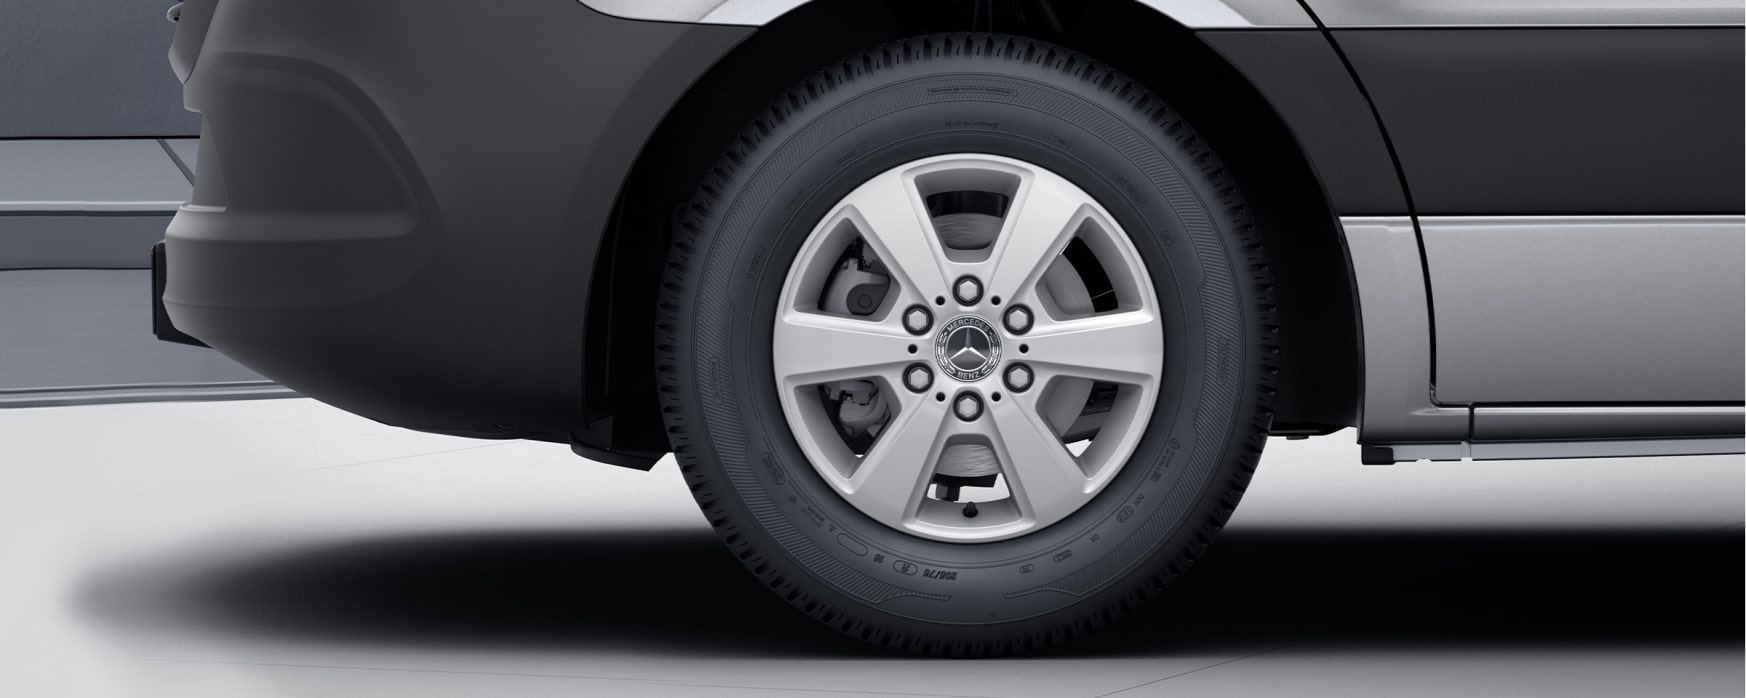 Sprinter Panel Van, 40.6-cm (16-inch) 6-spoke light-alloy wheels, painted in vanadium silver